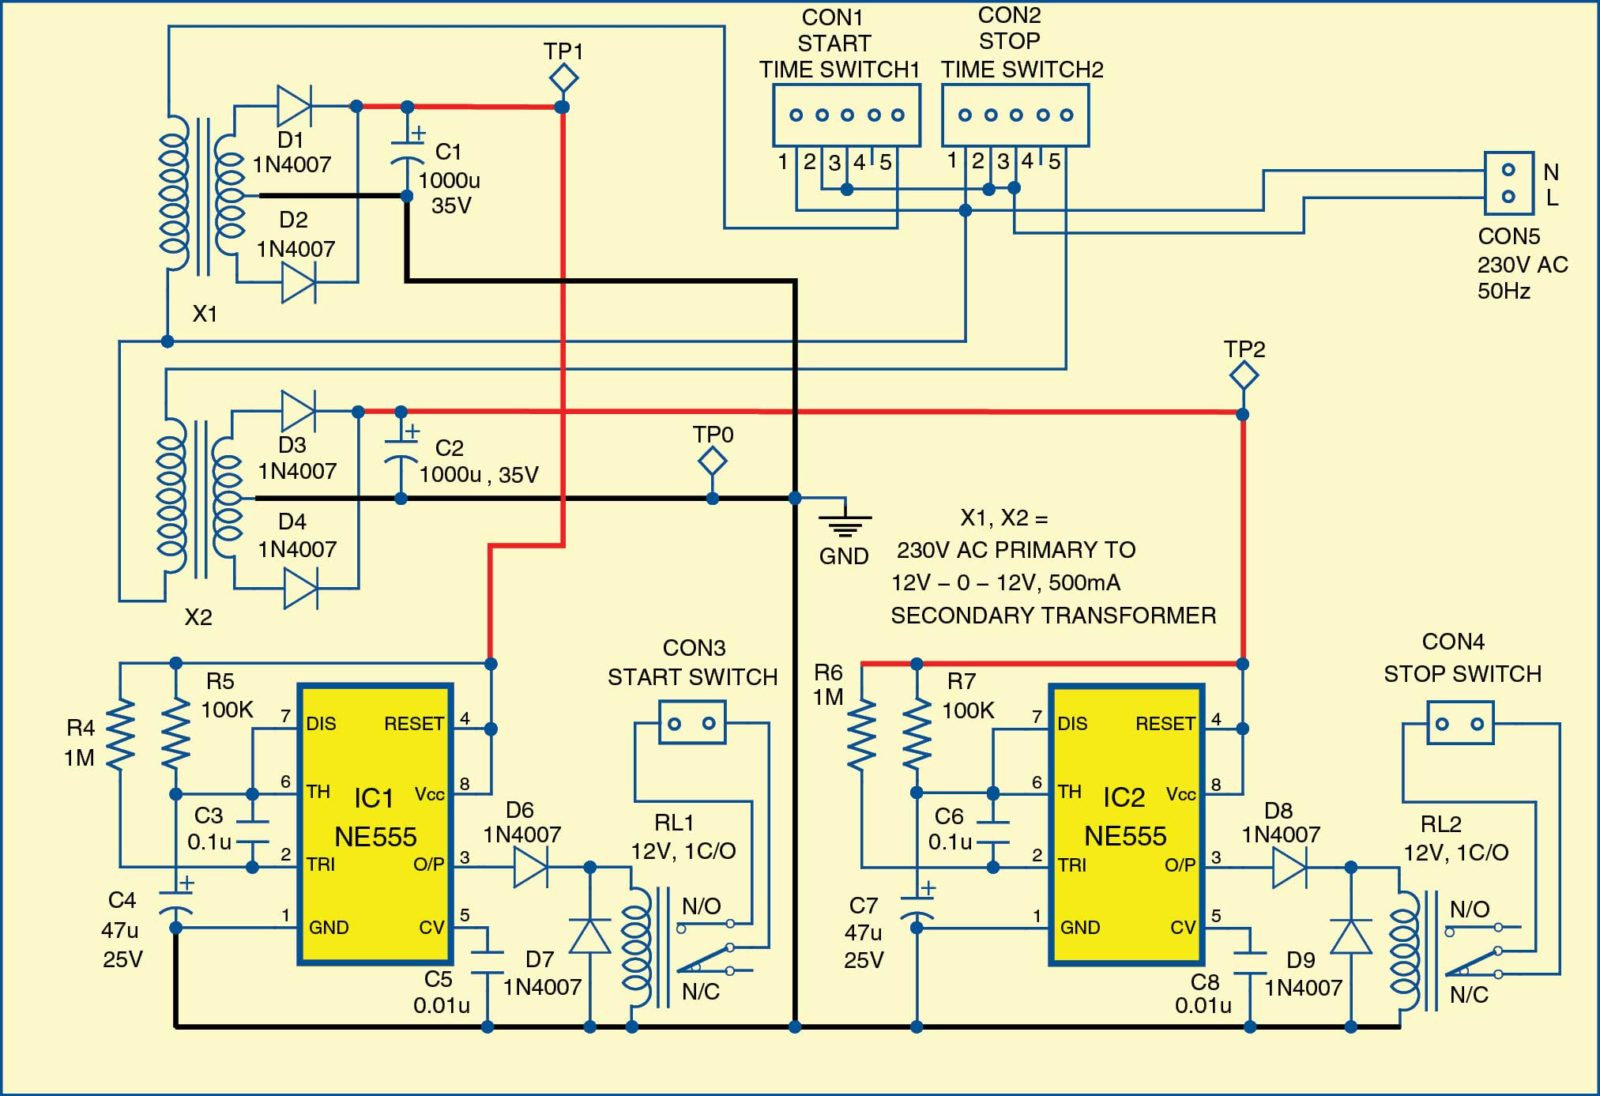 WRG-9829] 3 Phase Auto Starter Wiring Diagram on